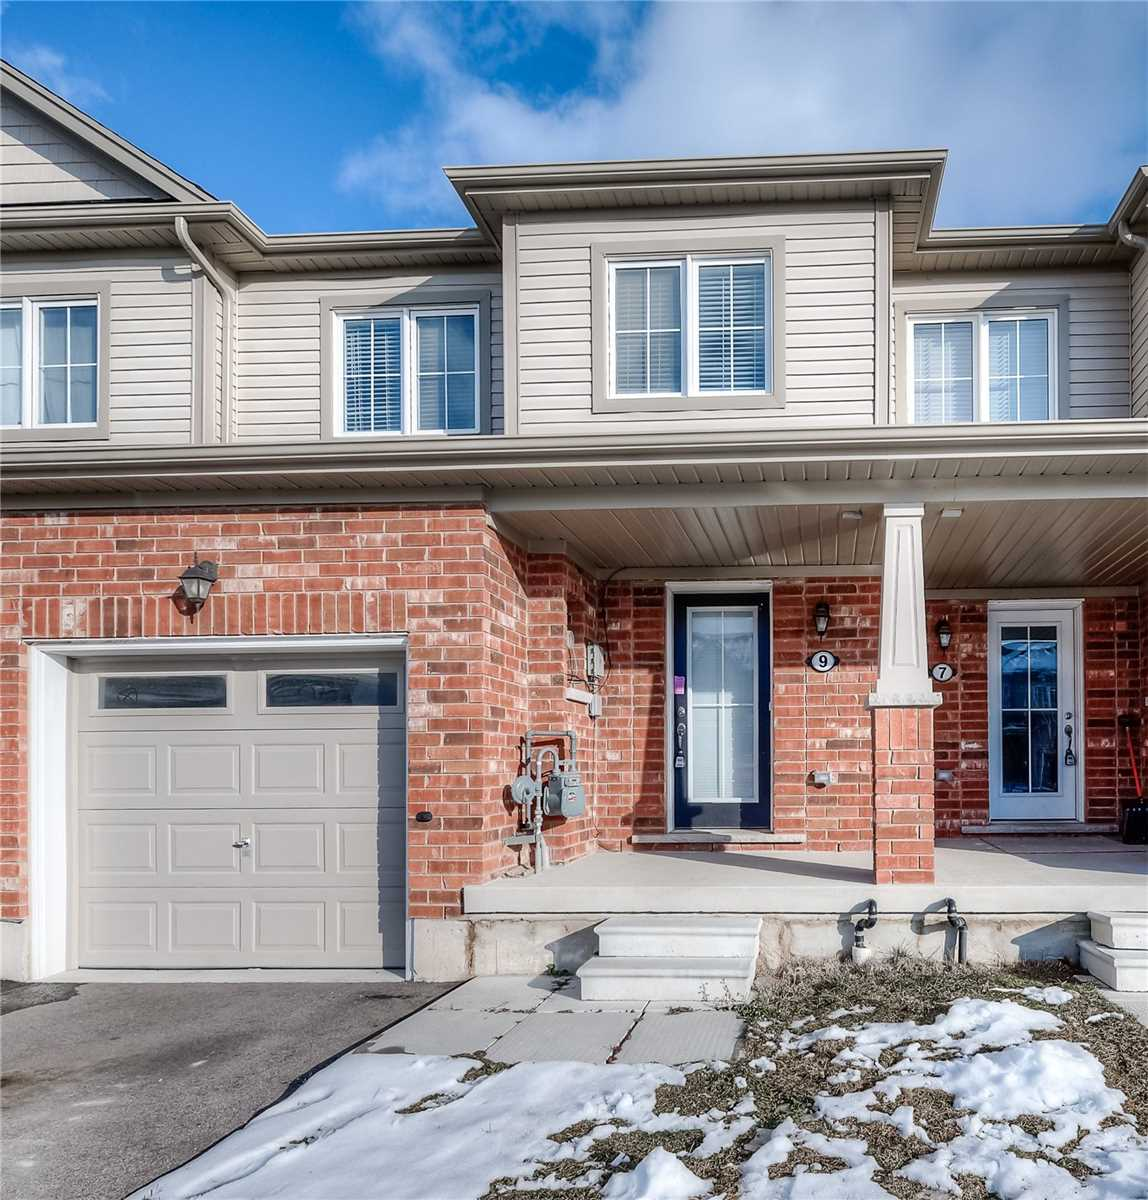 pictures of house for sale MLS: X5081893 located at 9 Butcher Cres, Brantford N3T0P2